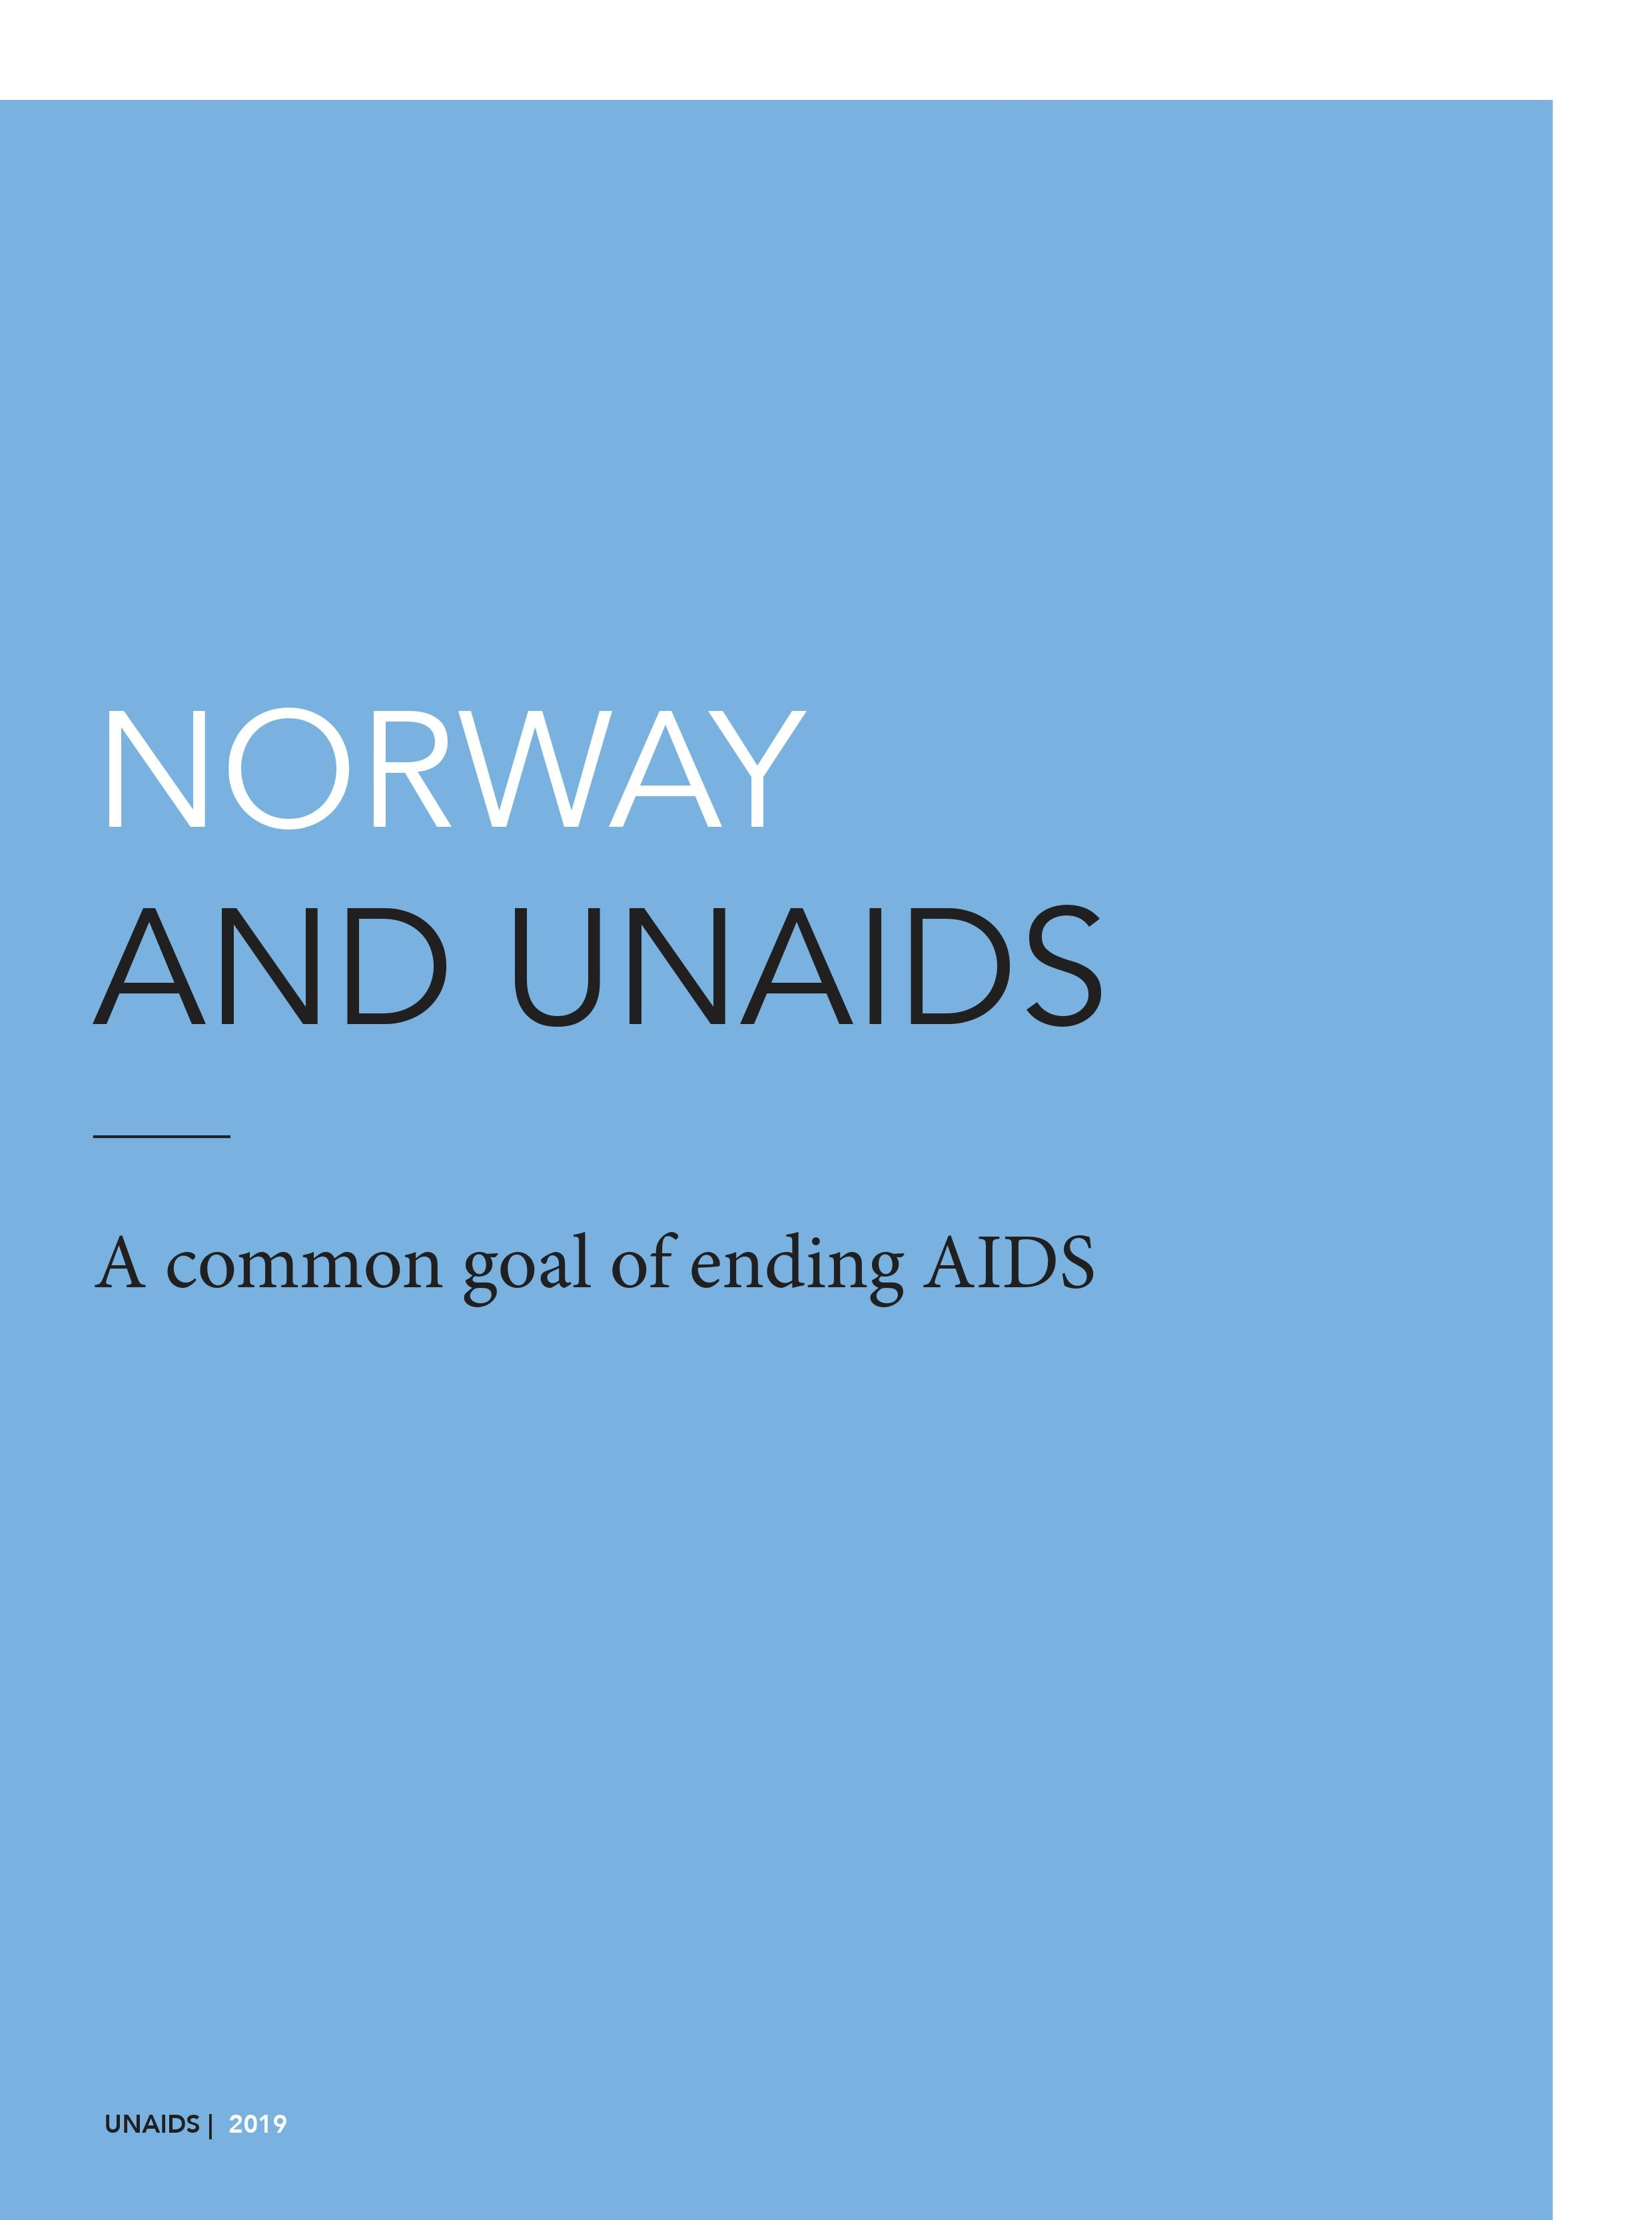 Norway and UNAIDS